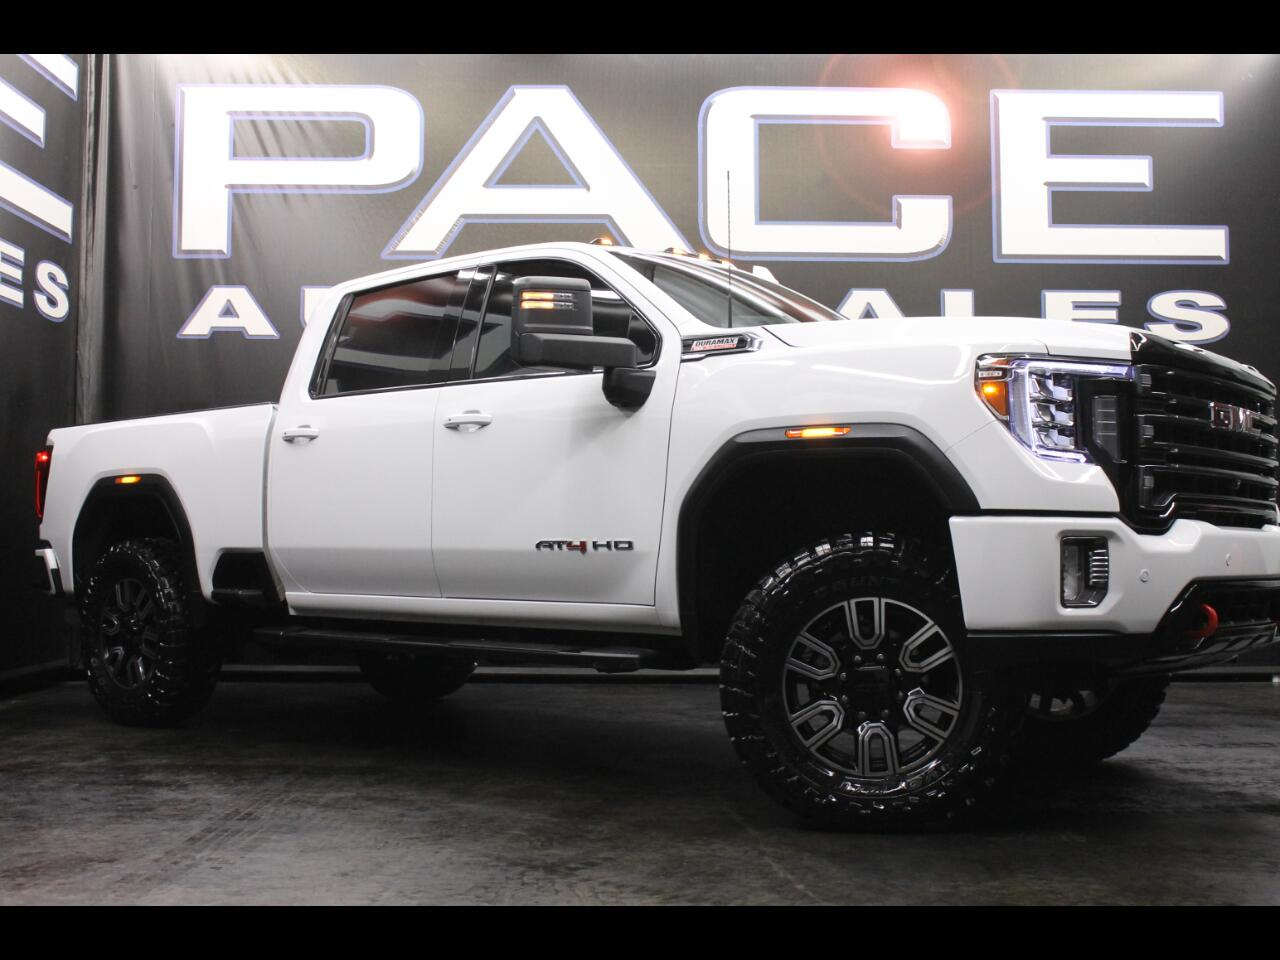 Used 2020 Gmc Sierra 2500hd Sold In Hattiesburg Ms 39402 Pace Auto Sales